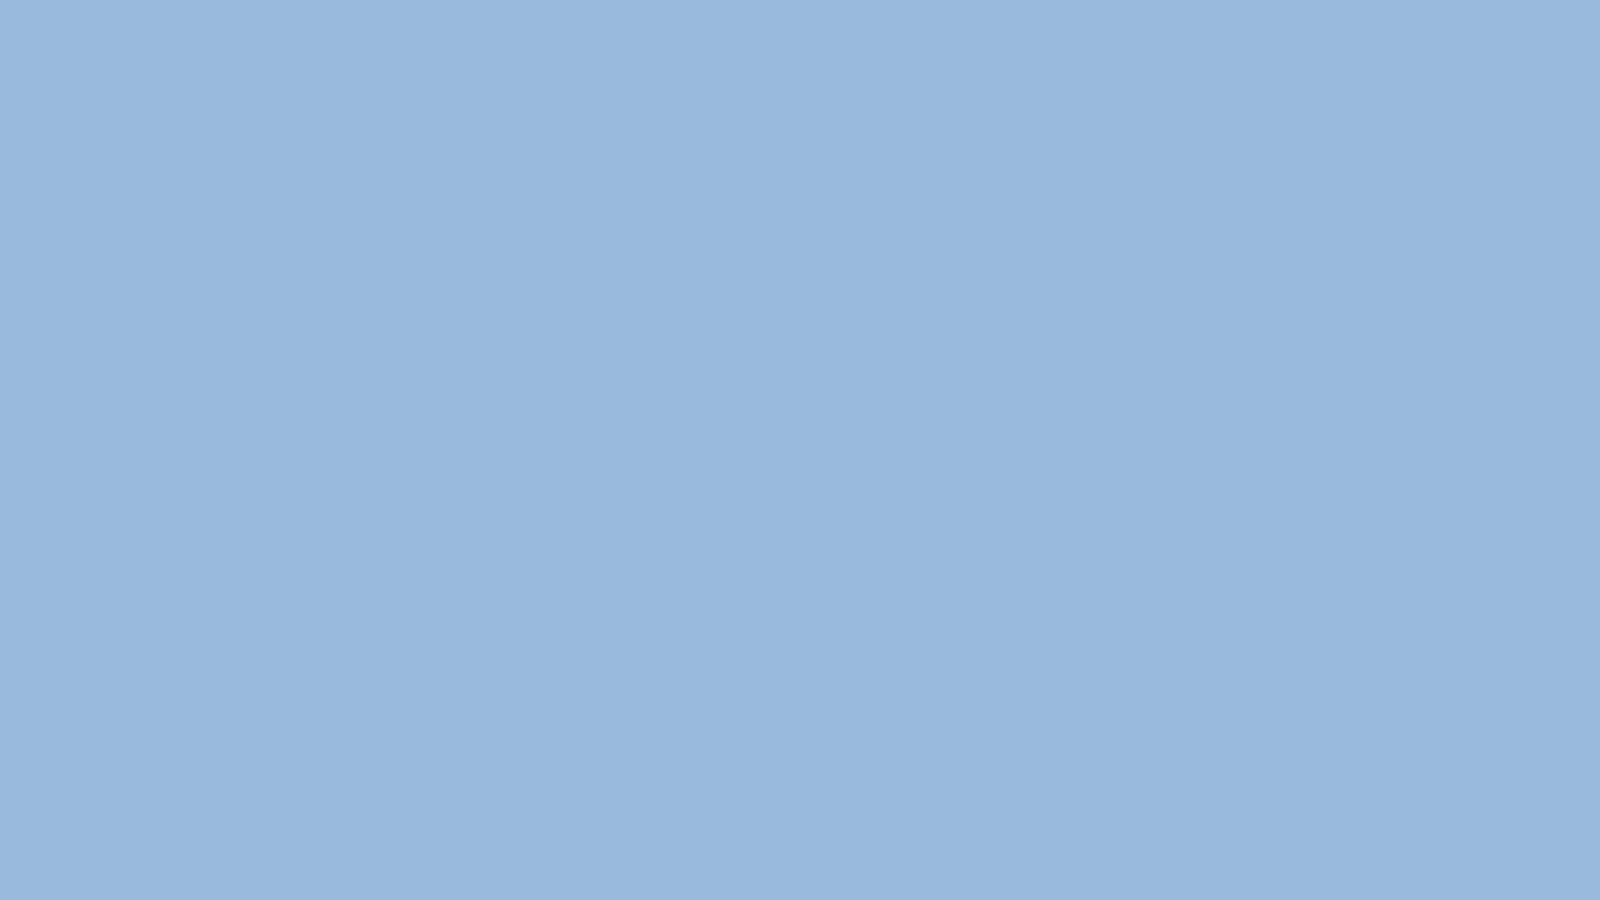 1600x900 Carolina Blue Solid Color Background